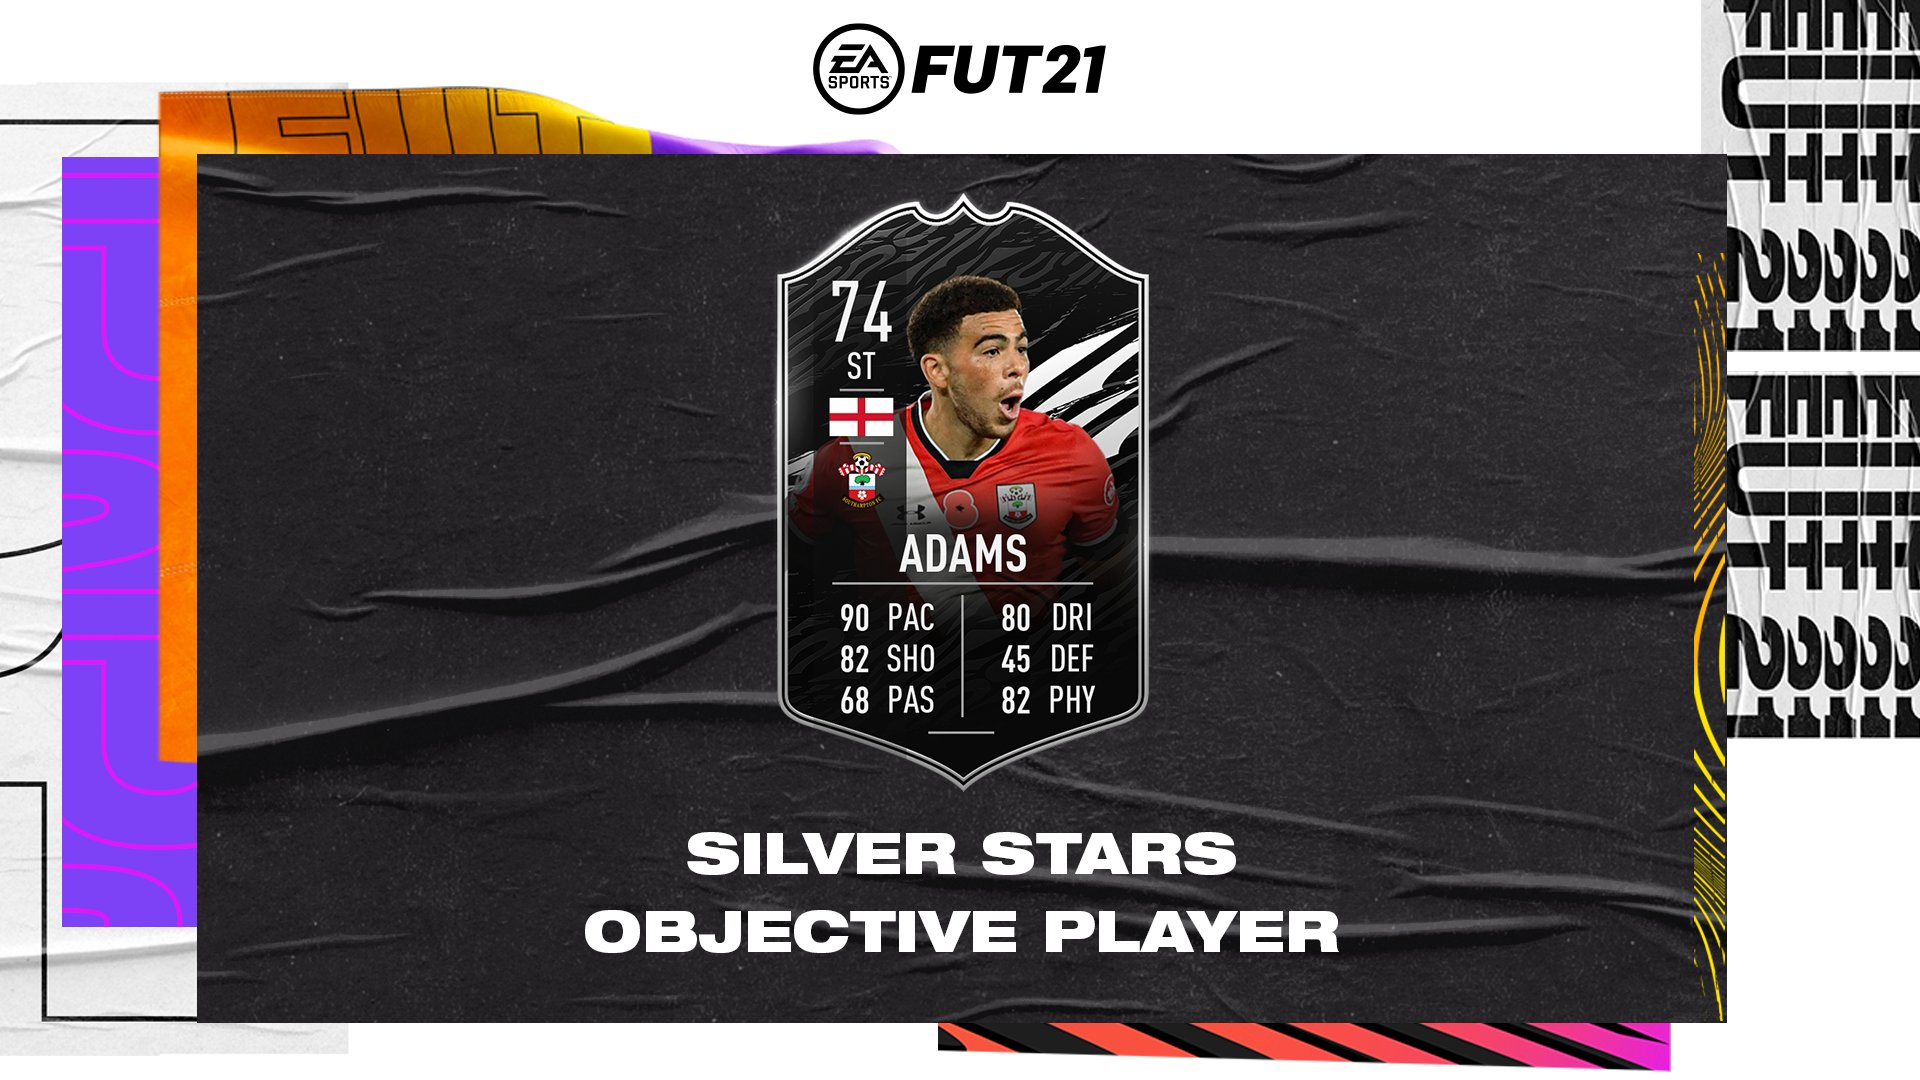 Adams Silver Star Objective Player